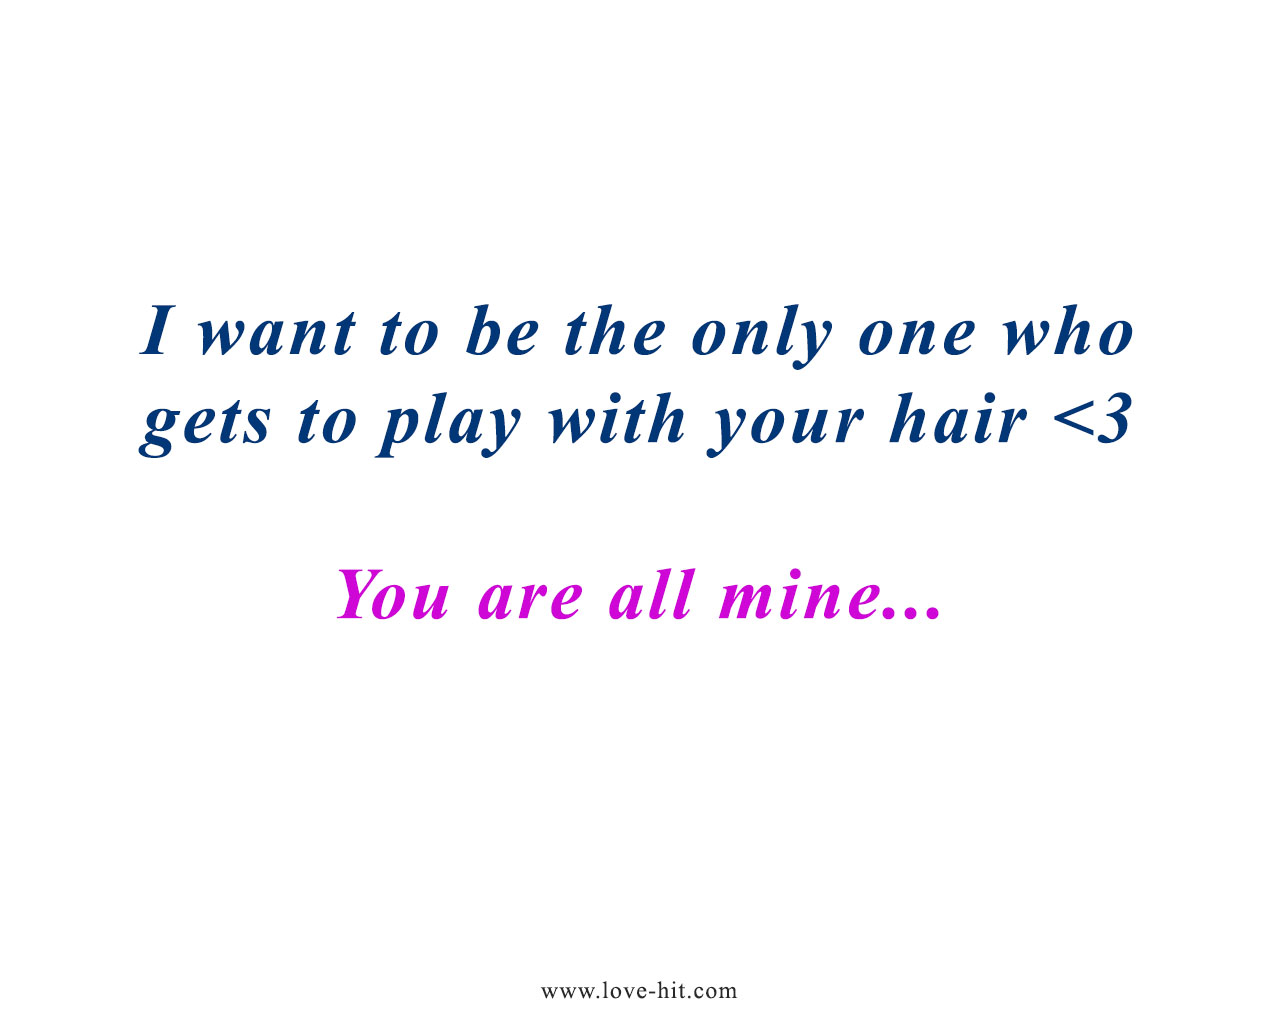 I want to be the only one who gets to play with your hair